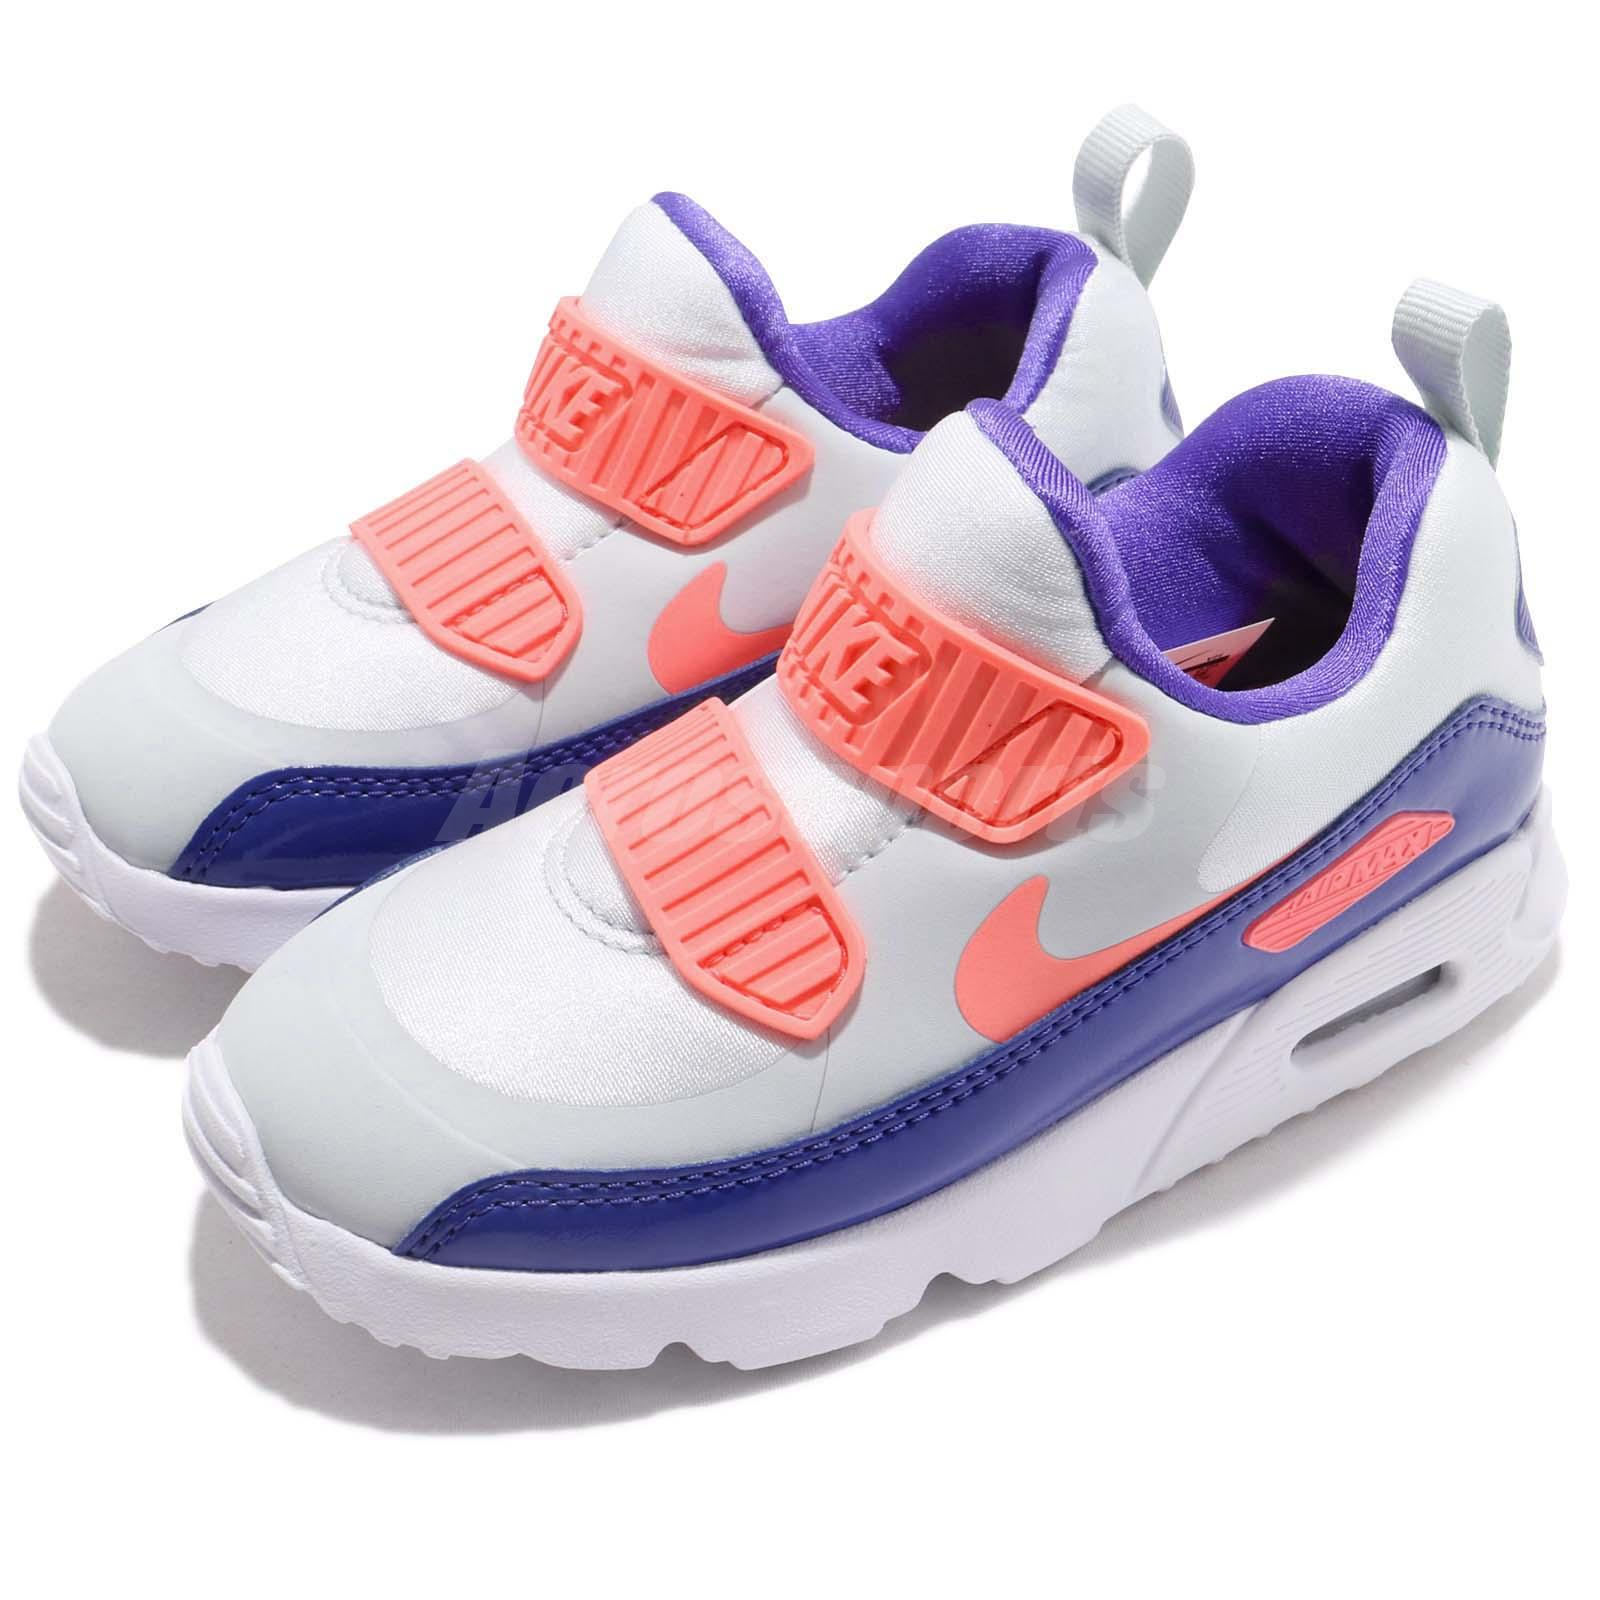 big sale aa618 ef578 Details about Nike Air Max Tiny 90 TD Pure Platinum Lava Glow Toddler  Infant Shoes 881928-005